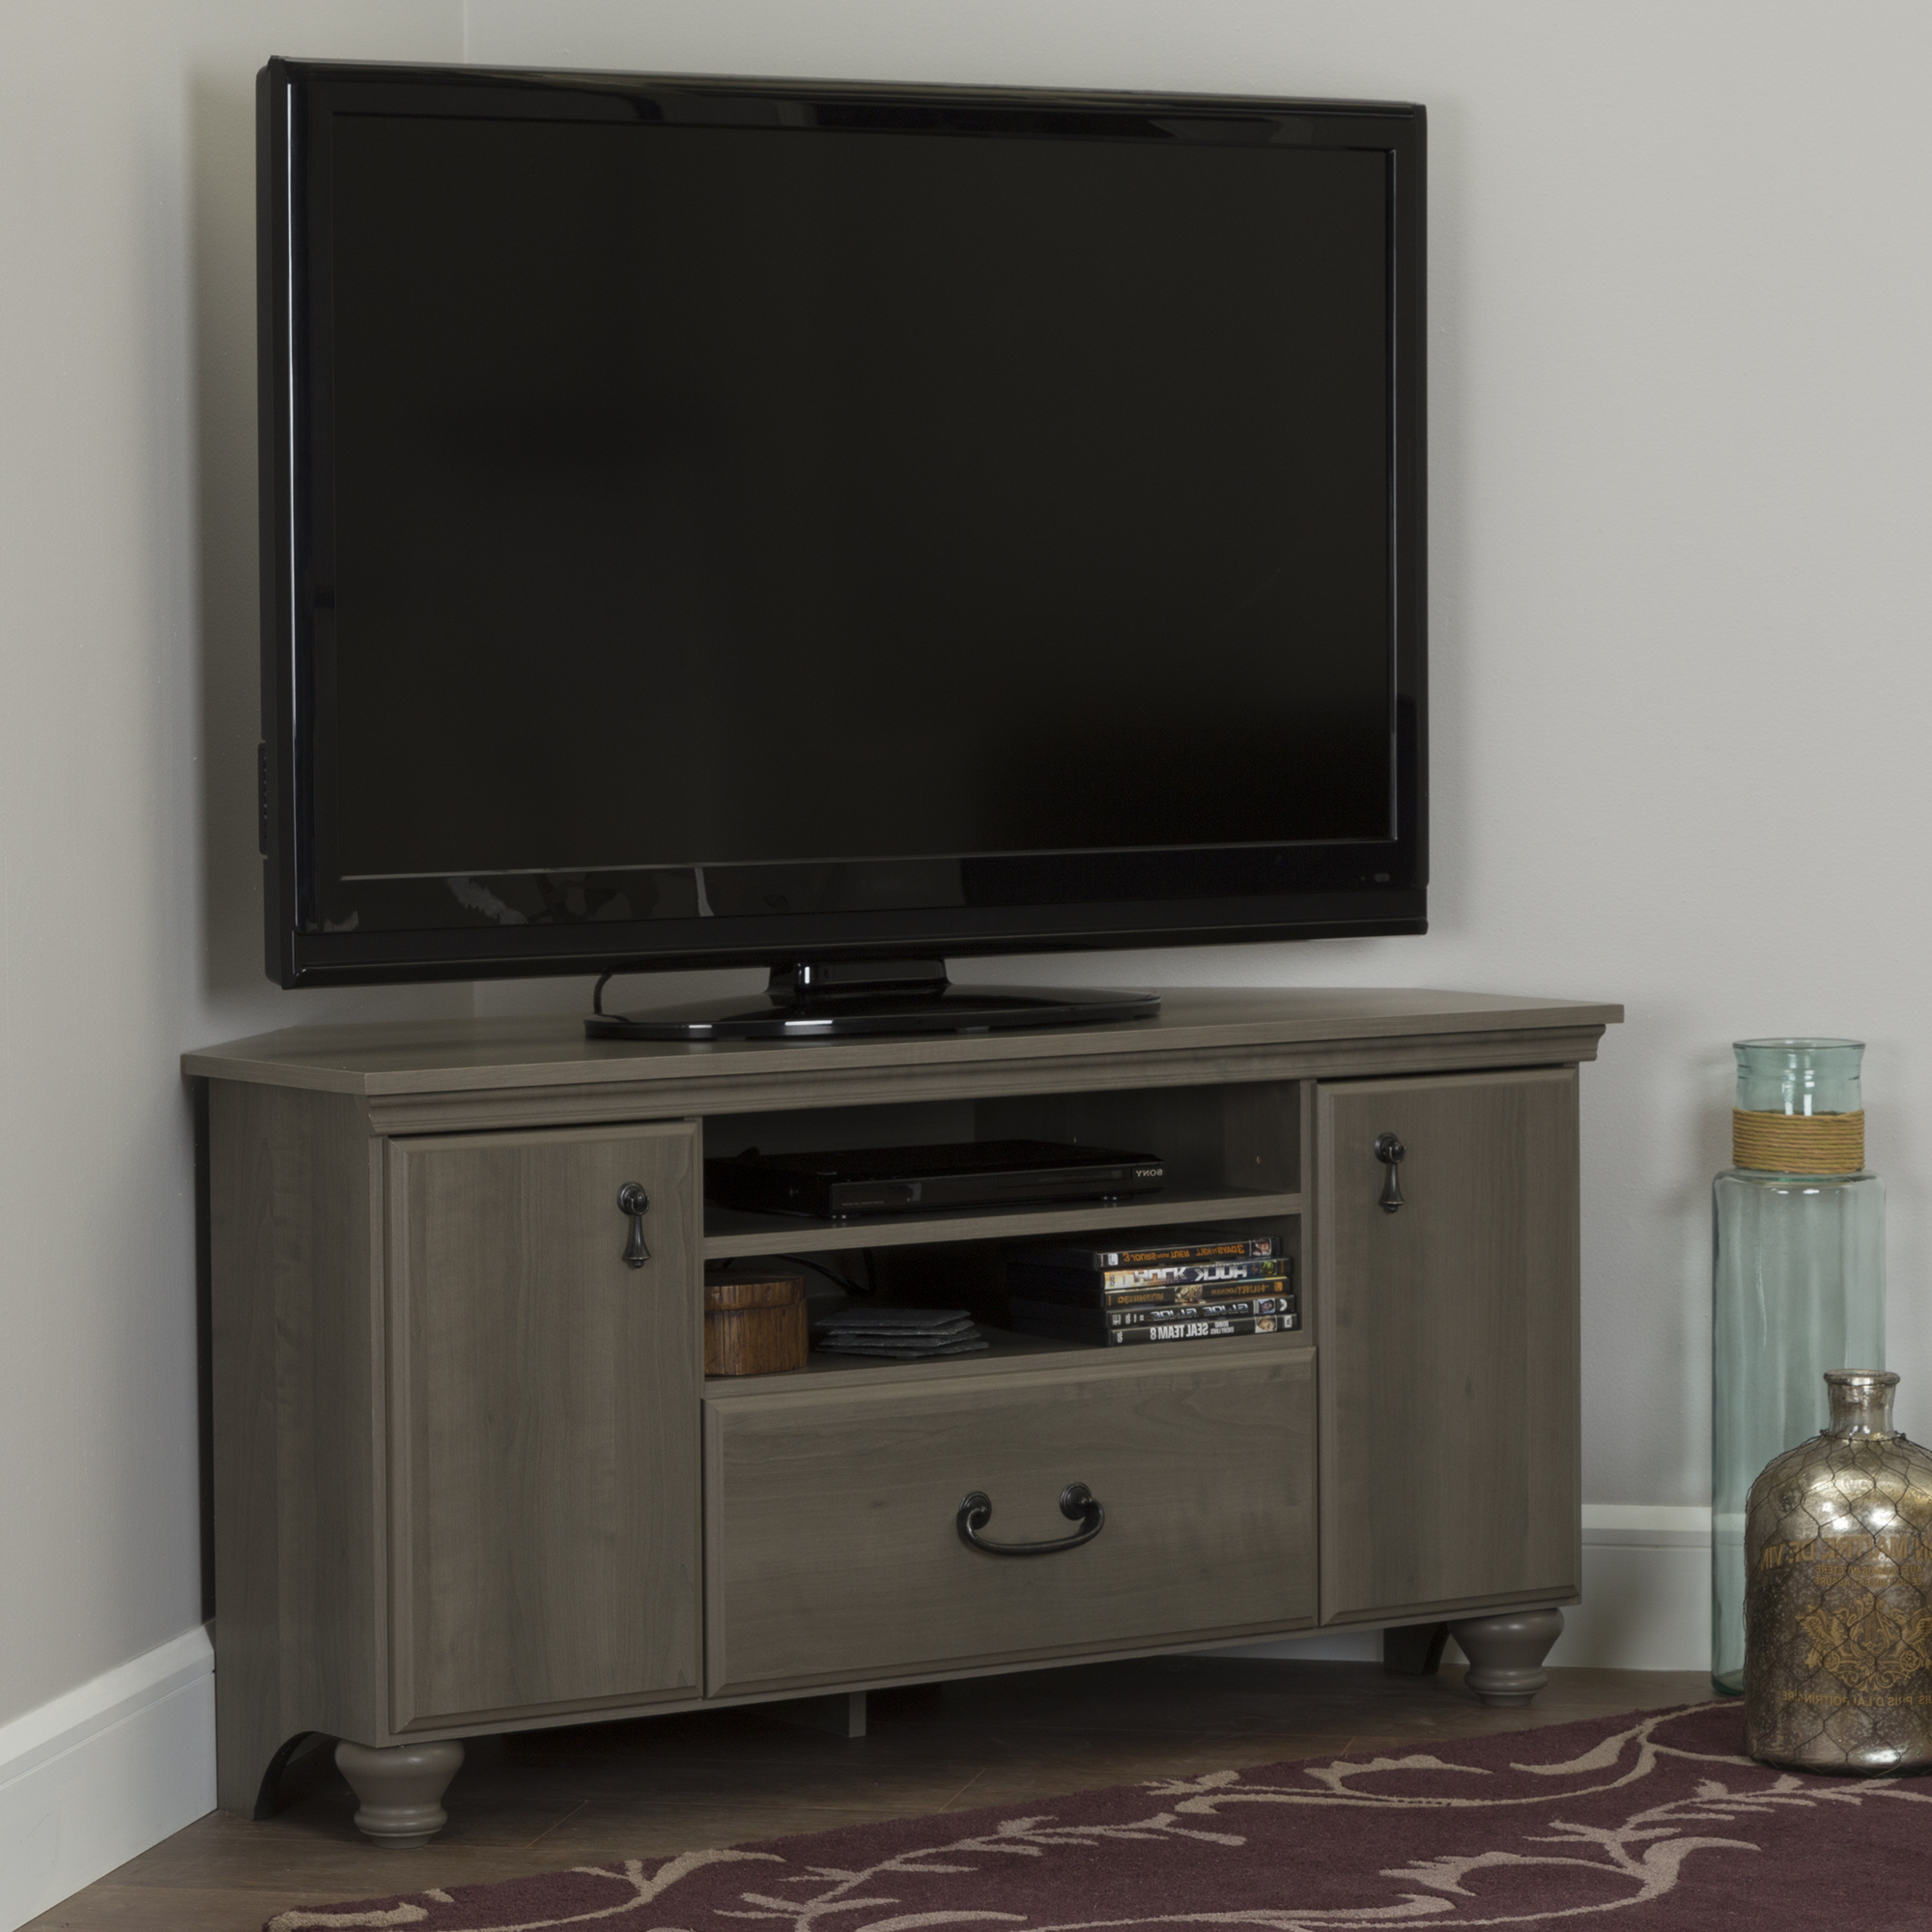 Tv Stands With Led Lights In Multiple Finishes Inside Favorite South Shore Noble Corner Tv Stand For Tvs Up To 55' In (View 8 of 10)